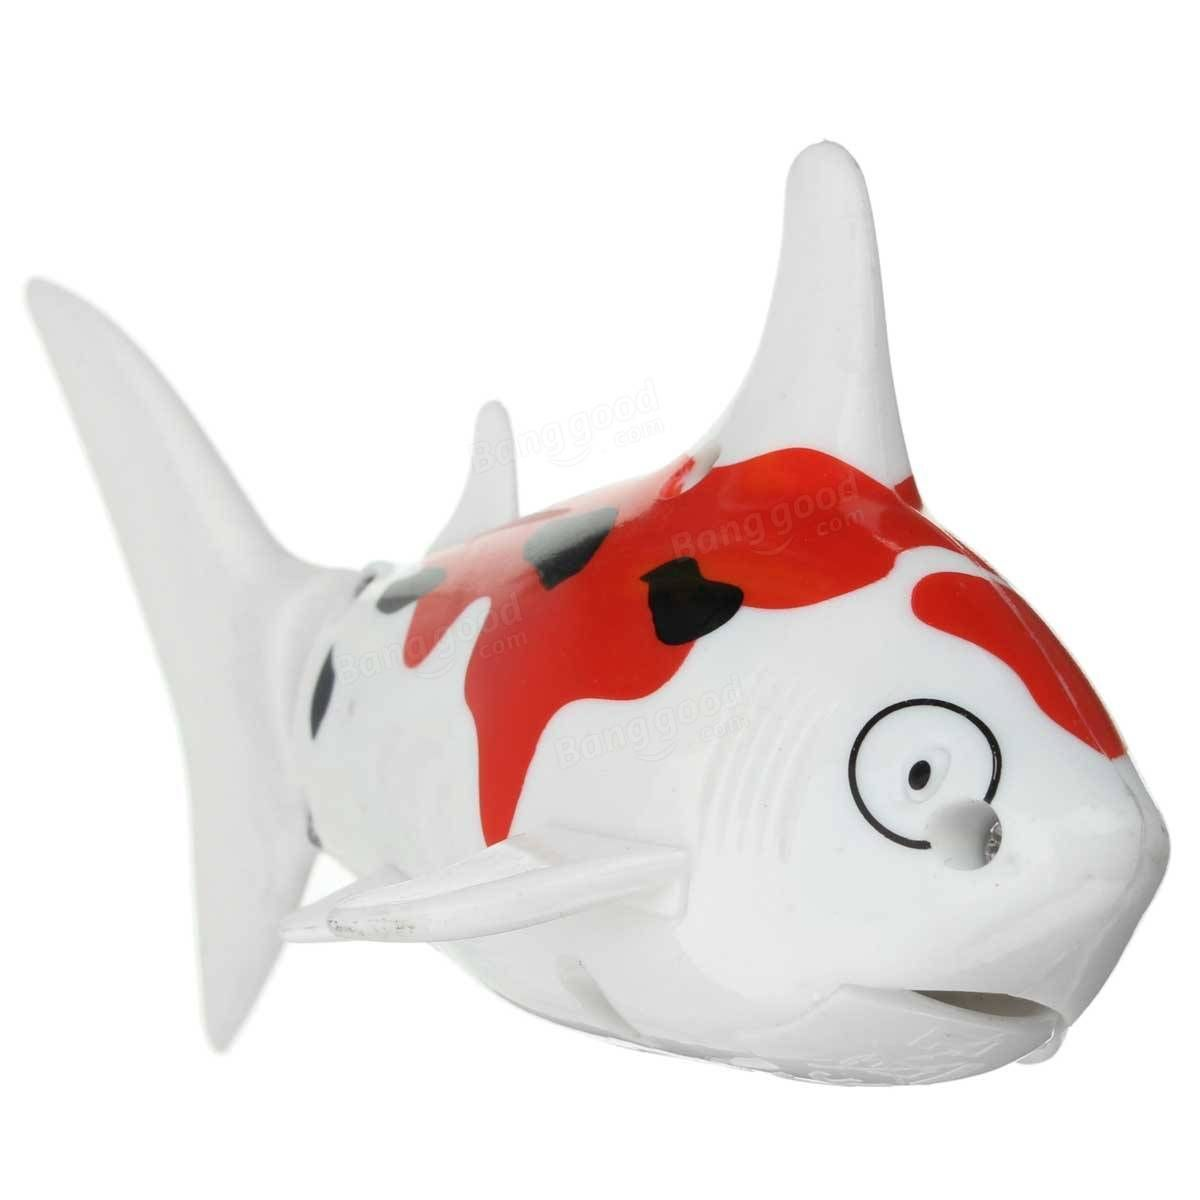 Radio Rc Mini Electrical Small Shark-Shaped Water Toys With